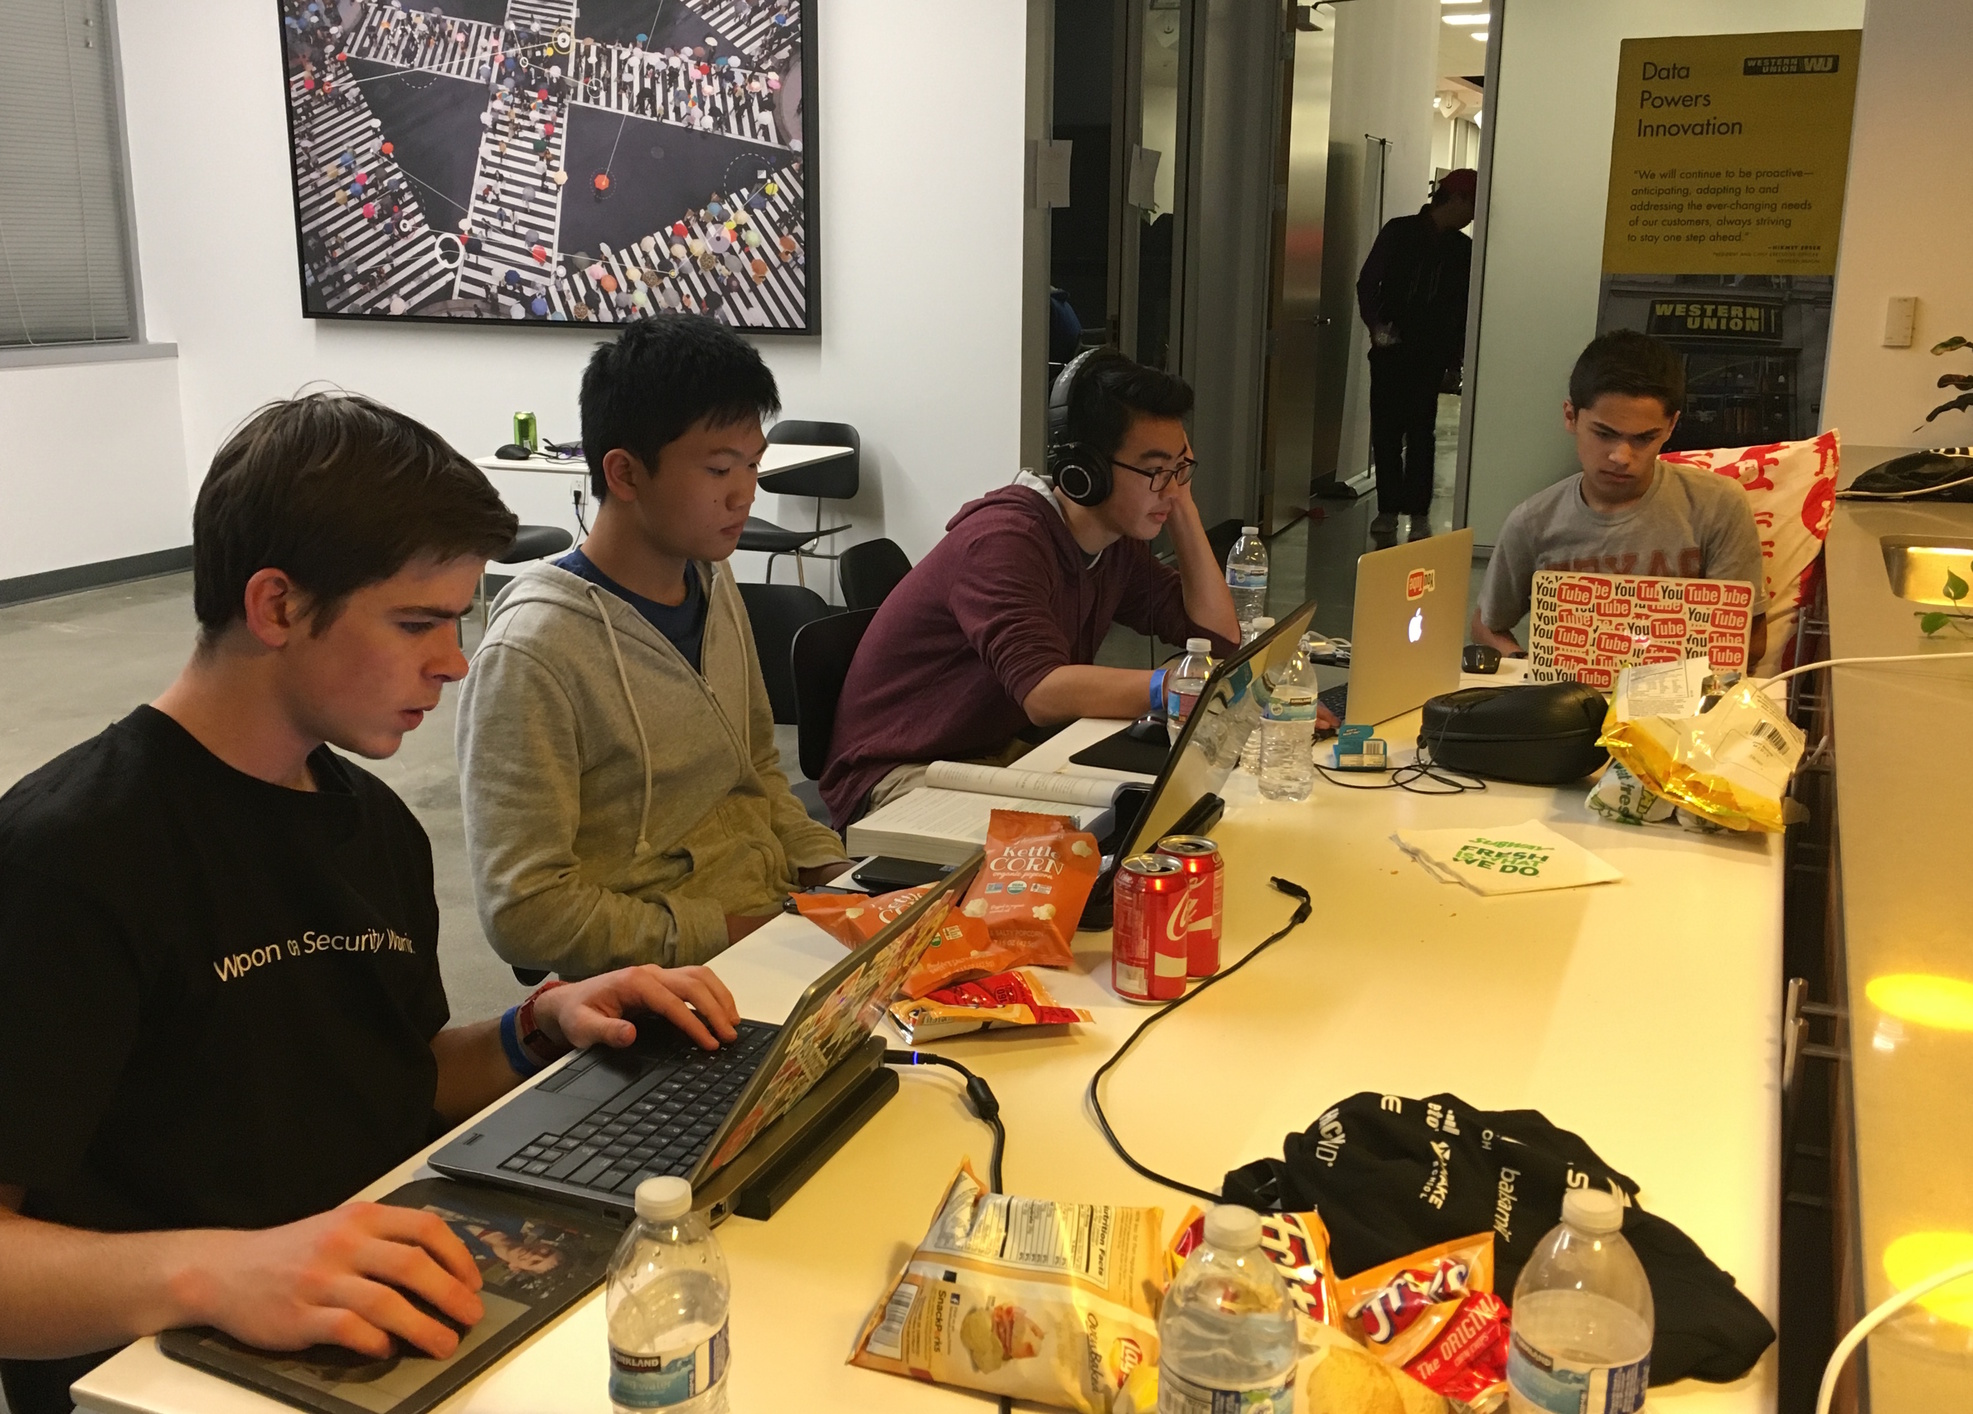 A+group+of+hackers+work+on+their+projects+through+the+night.